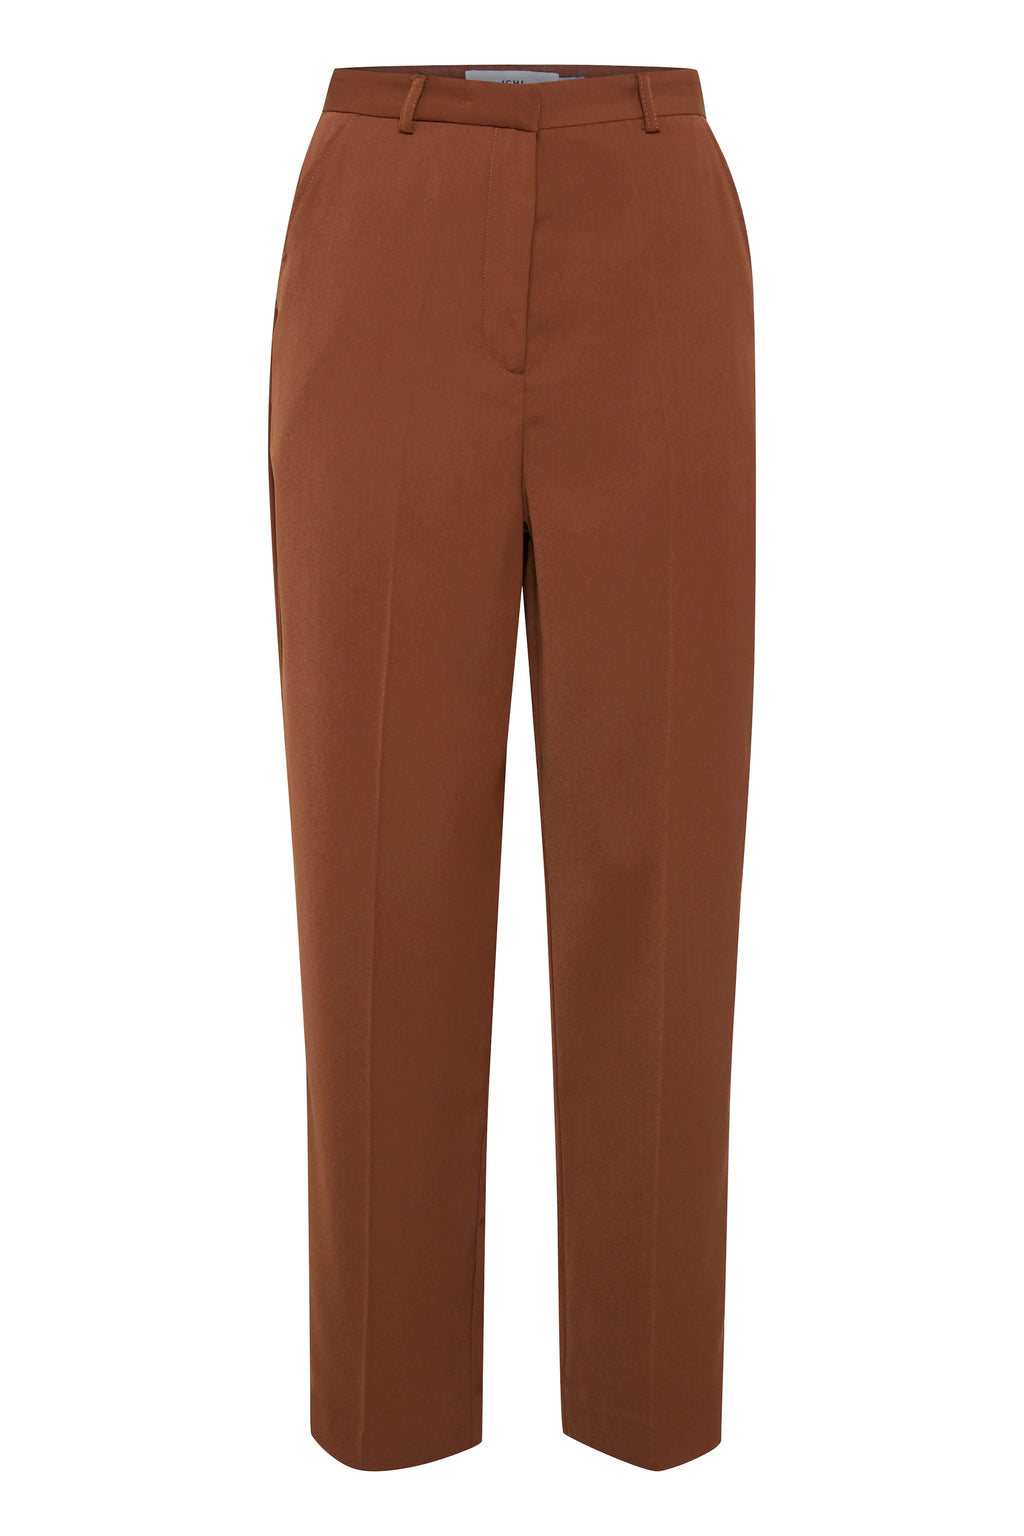 CHARLES high-waisted trousers